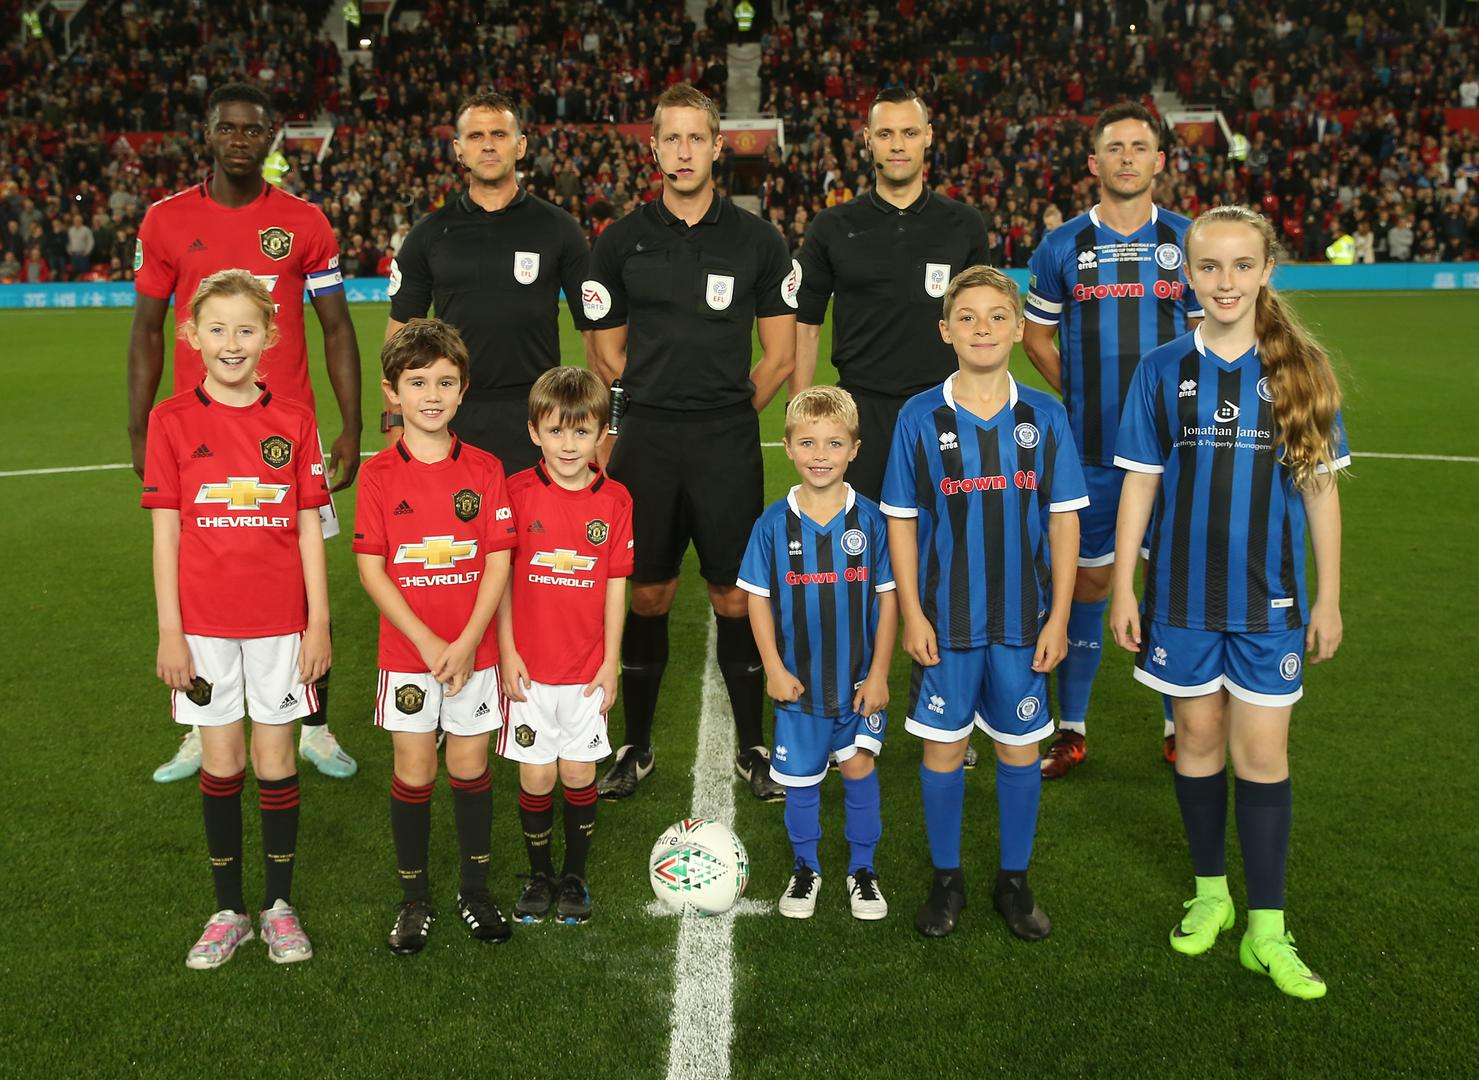 Manchester United and Rochdale line up before a game.